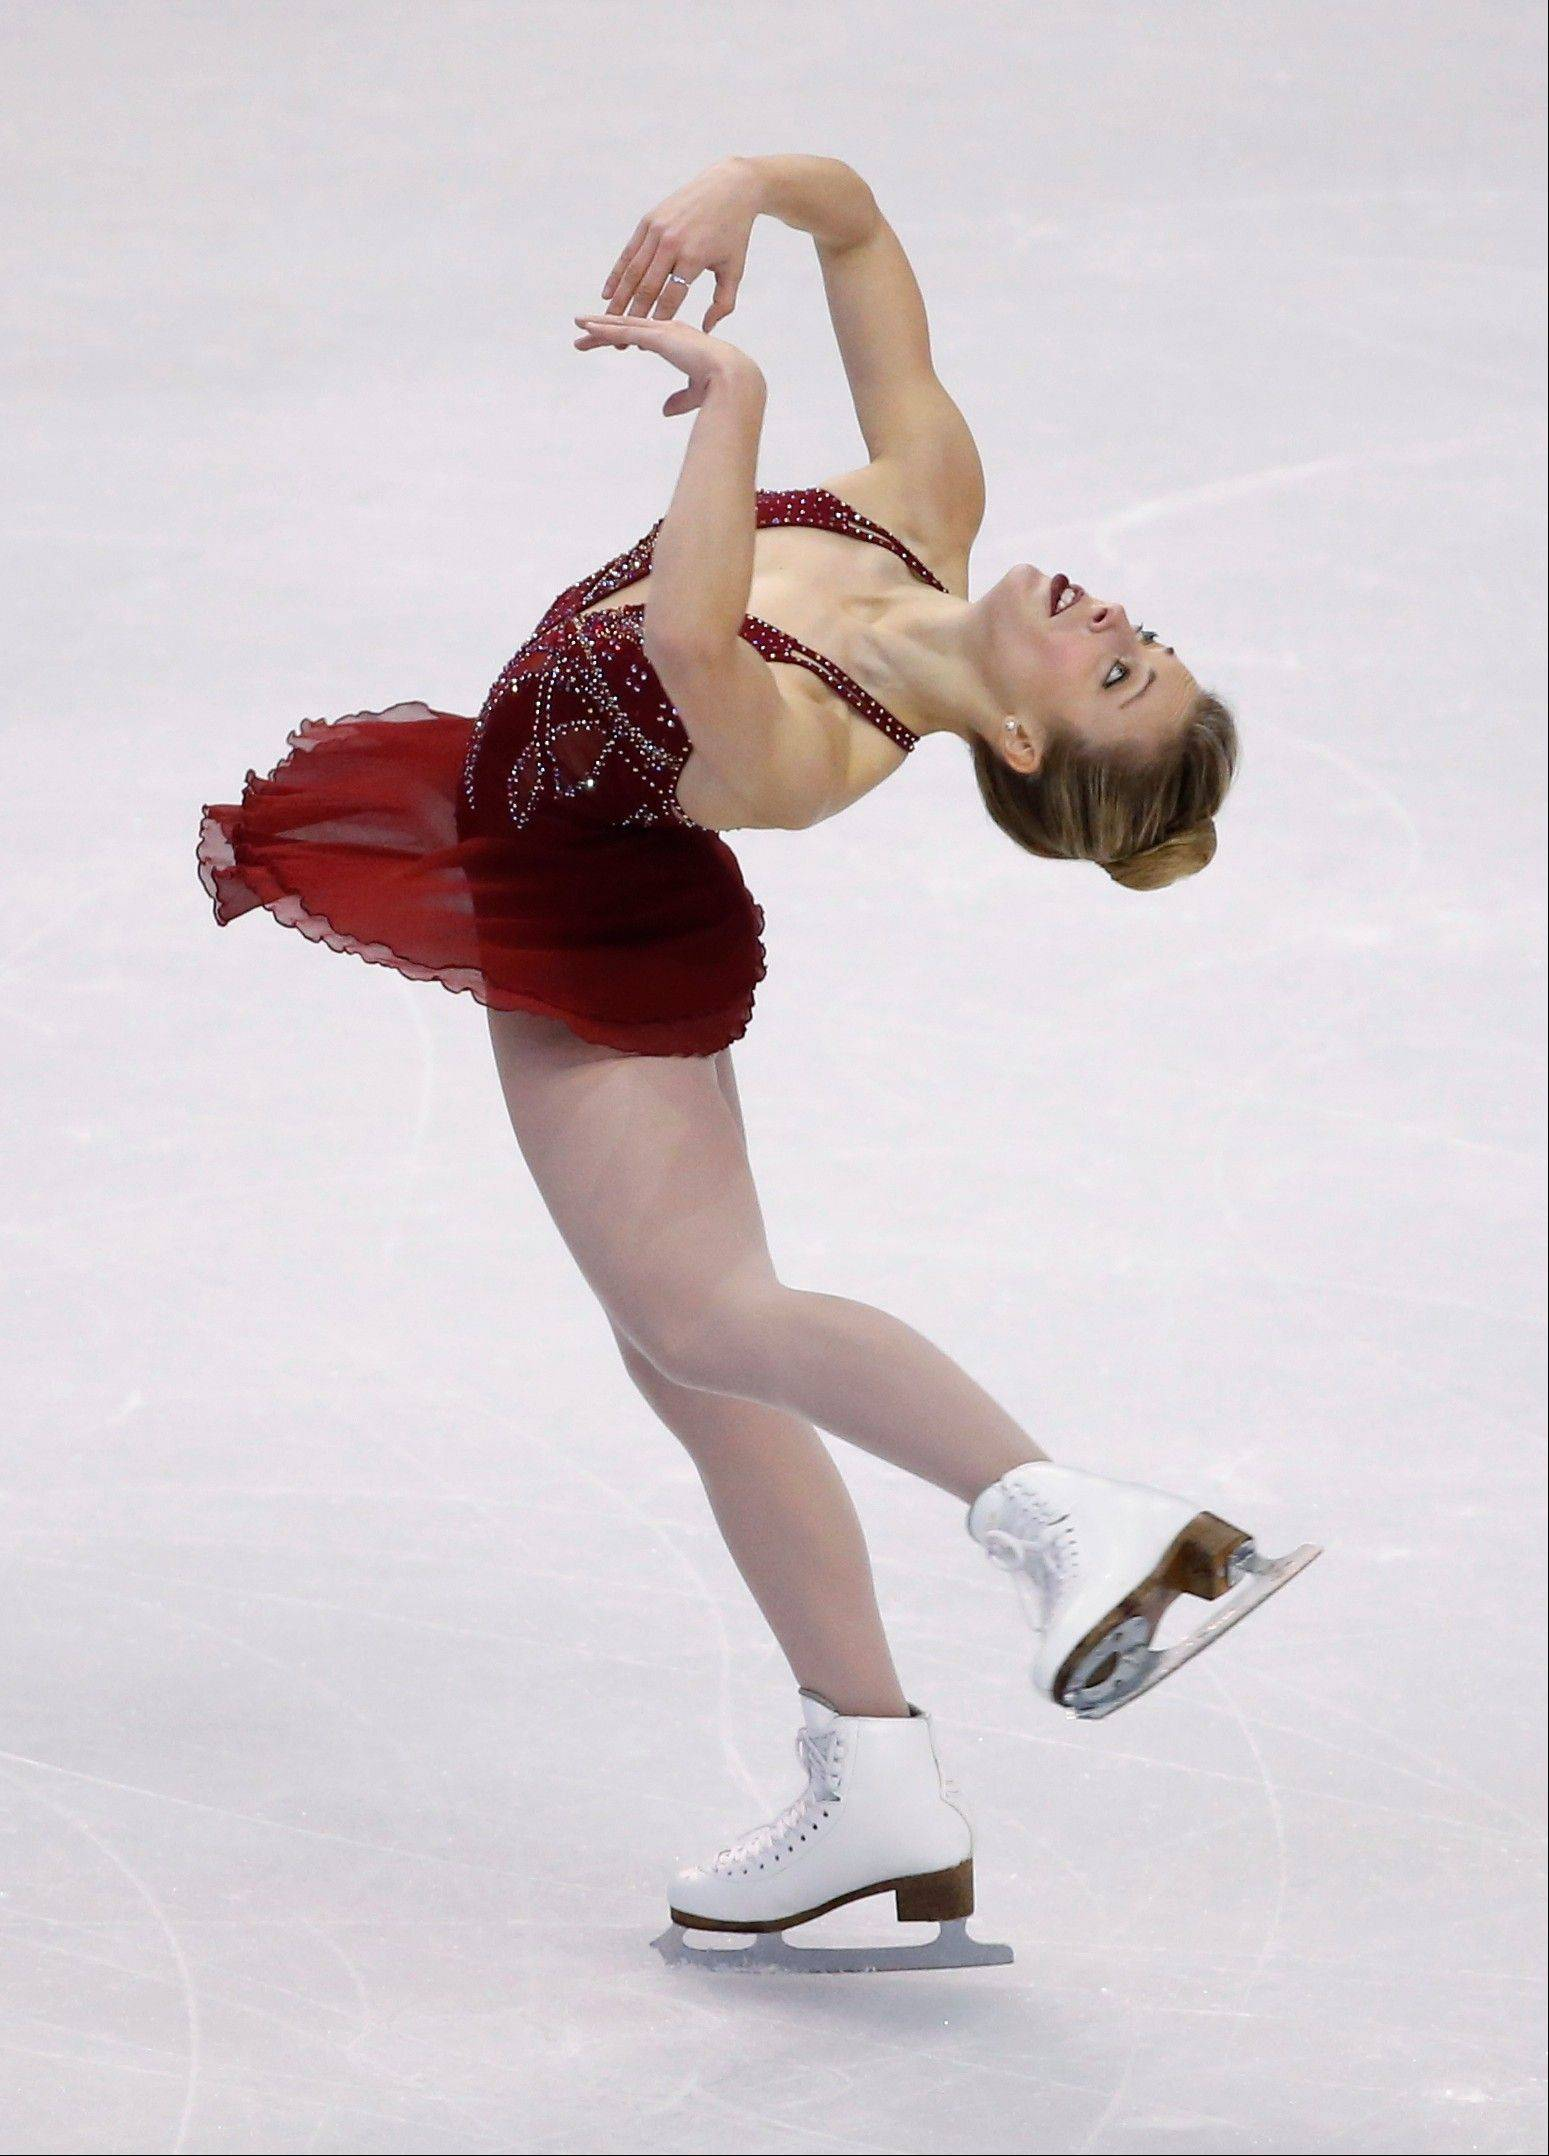 Ashley Wagner, who was favored entering the U.S. Figure Skating Championships in Boston, finished fourth overall after Saturday's free skate and is in danger of not making the U.S. Olympic team.